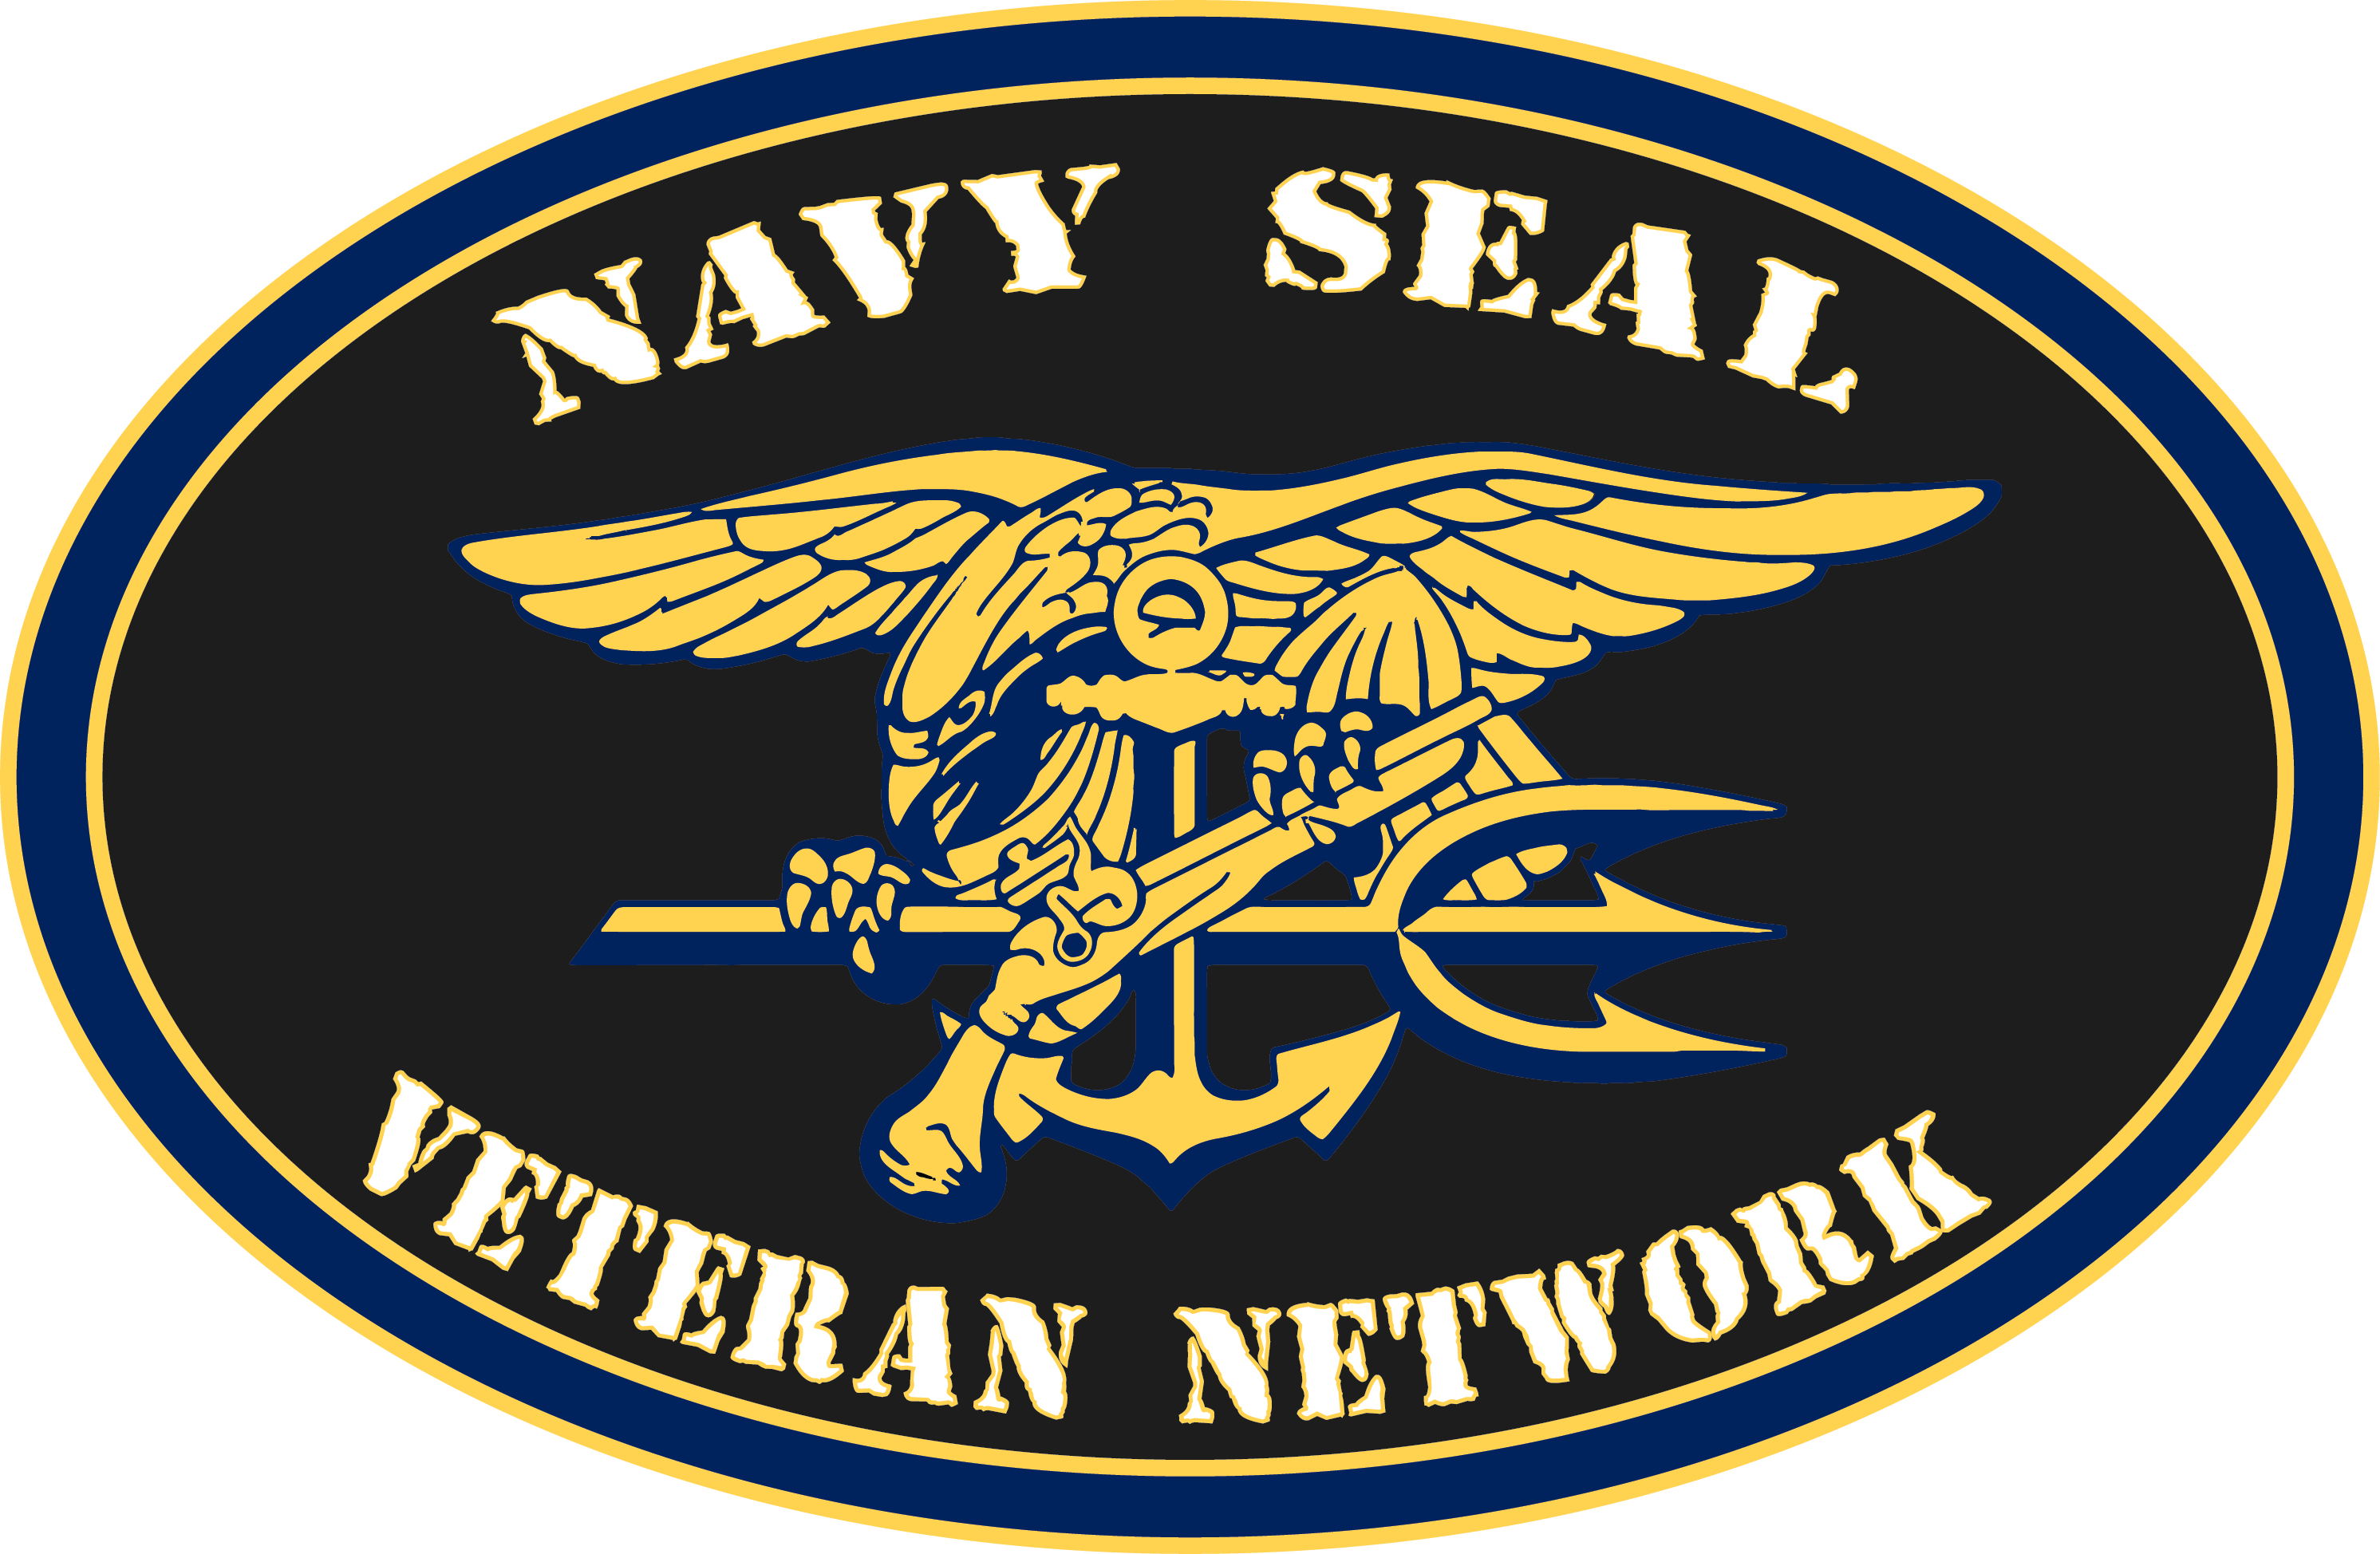 Navy SEAL Veteran Network